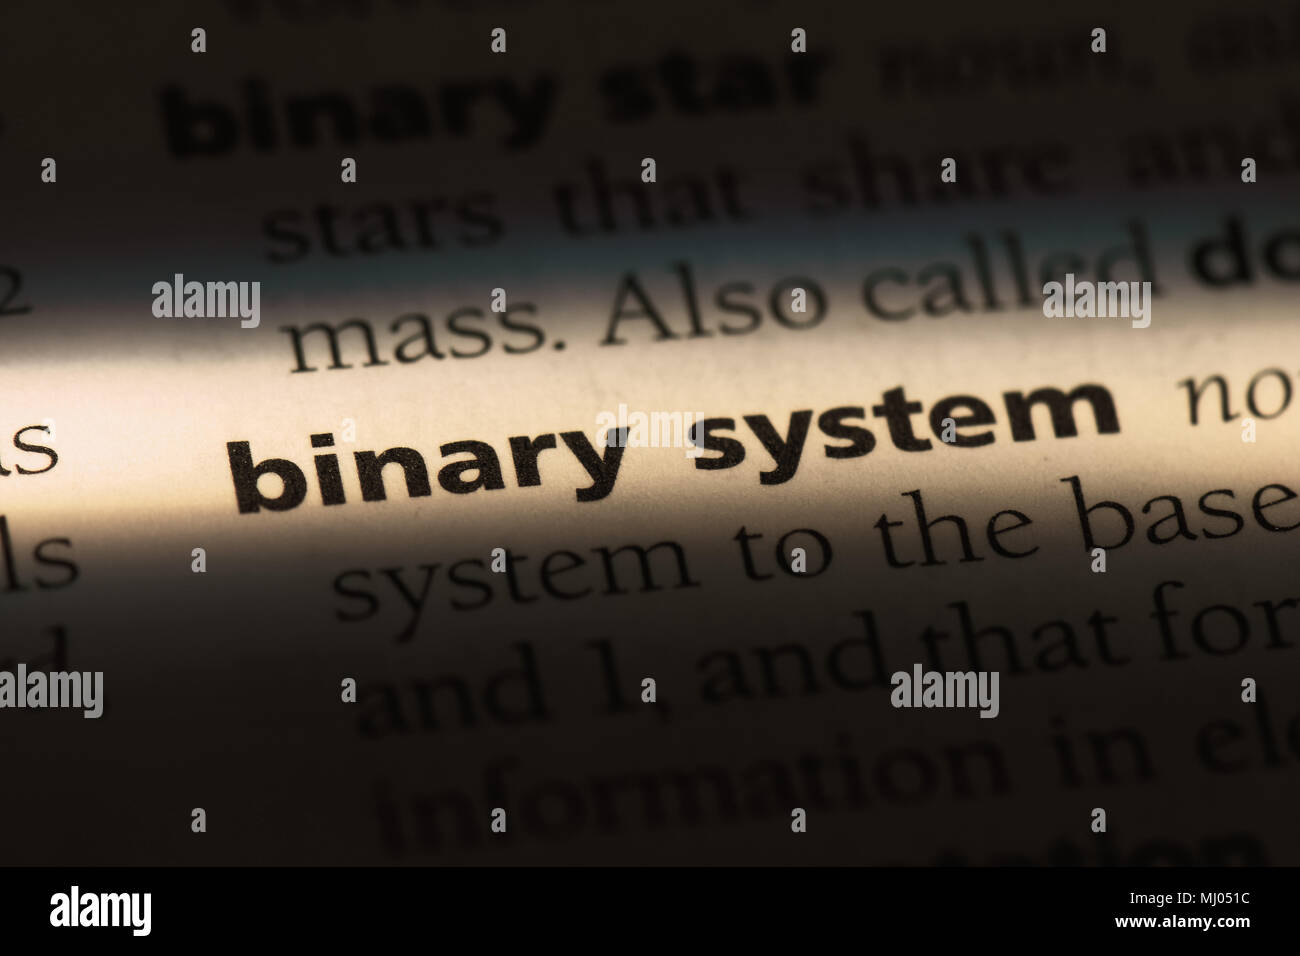 binary system word in a dictionary. binary system concept. Stock Photo